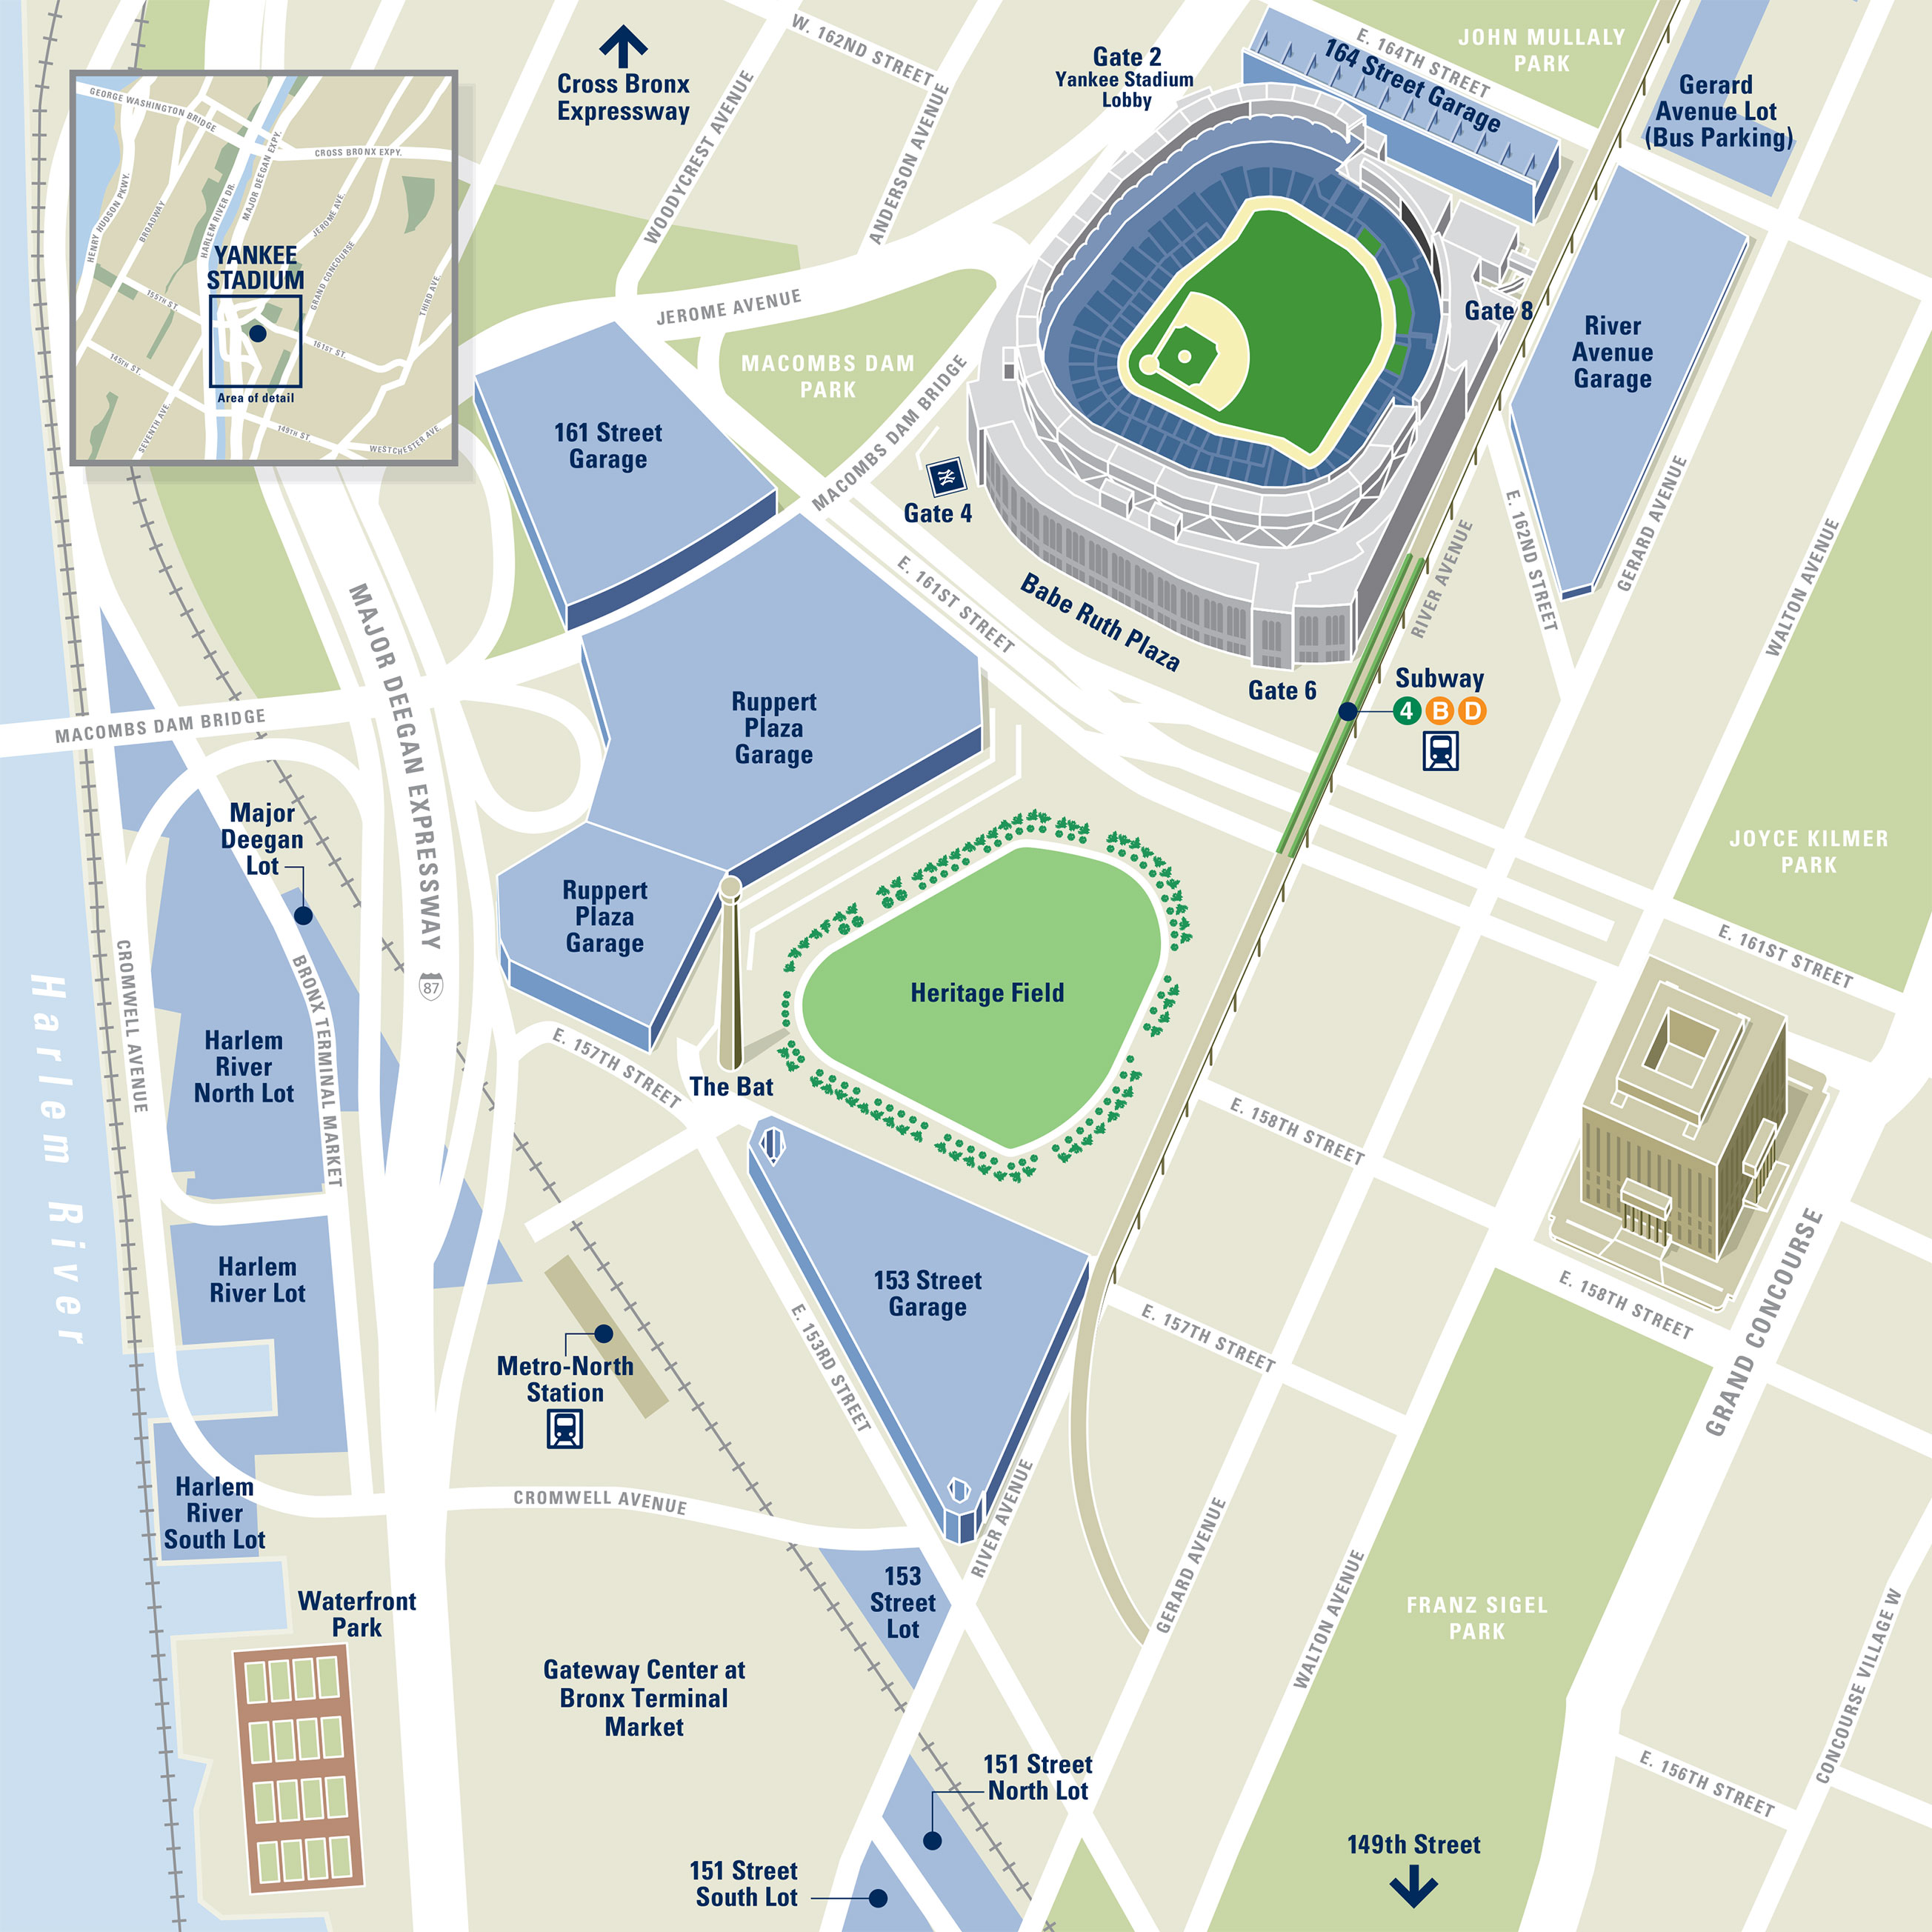 Yankee Stadium Directions and Parking Info | New York Yankees on nrg stadium street map, central park street map, minute maid park street map, manhattan street map, bank of america stadium street map, seattle street map, new york university location map, busch stadium street map, harlem new york city map, west hartford street map, union square street map, comerica park street map, angel stadium street map, lucas oil stadium street map, fenway park street map, alamodome street map, empire state building street map, new york street map, wrigley field street map, philadelphia street map,